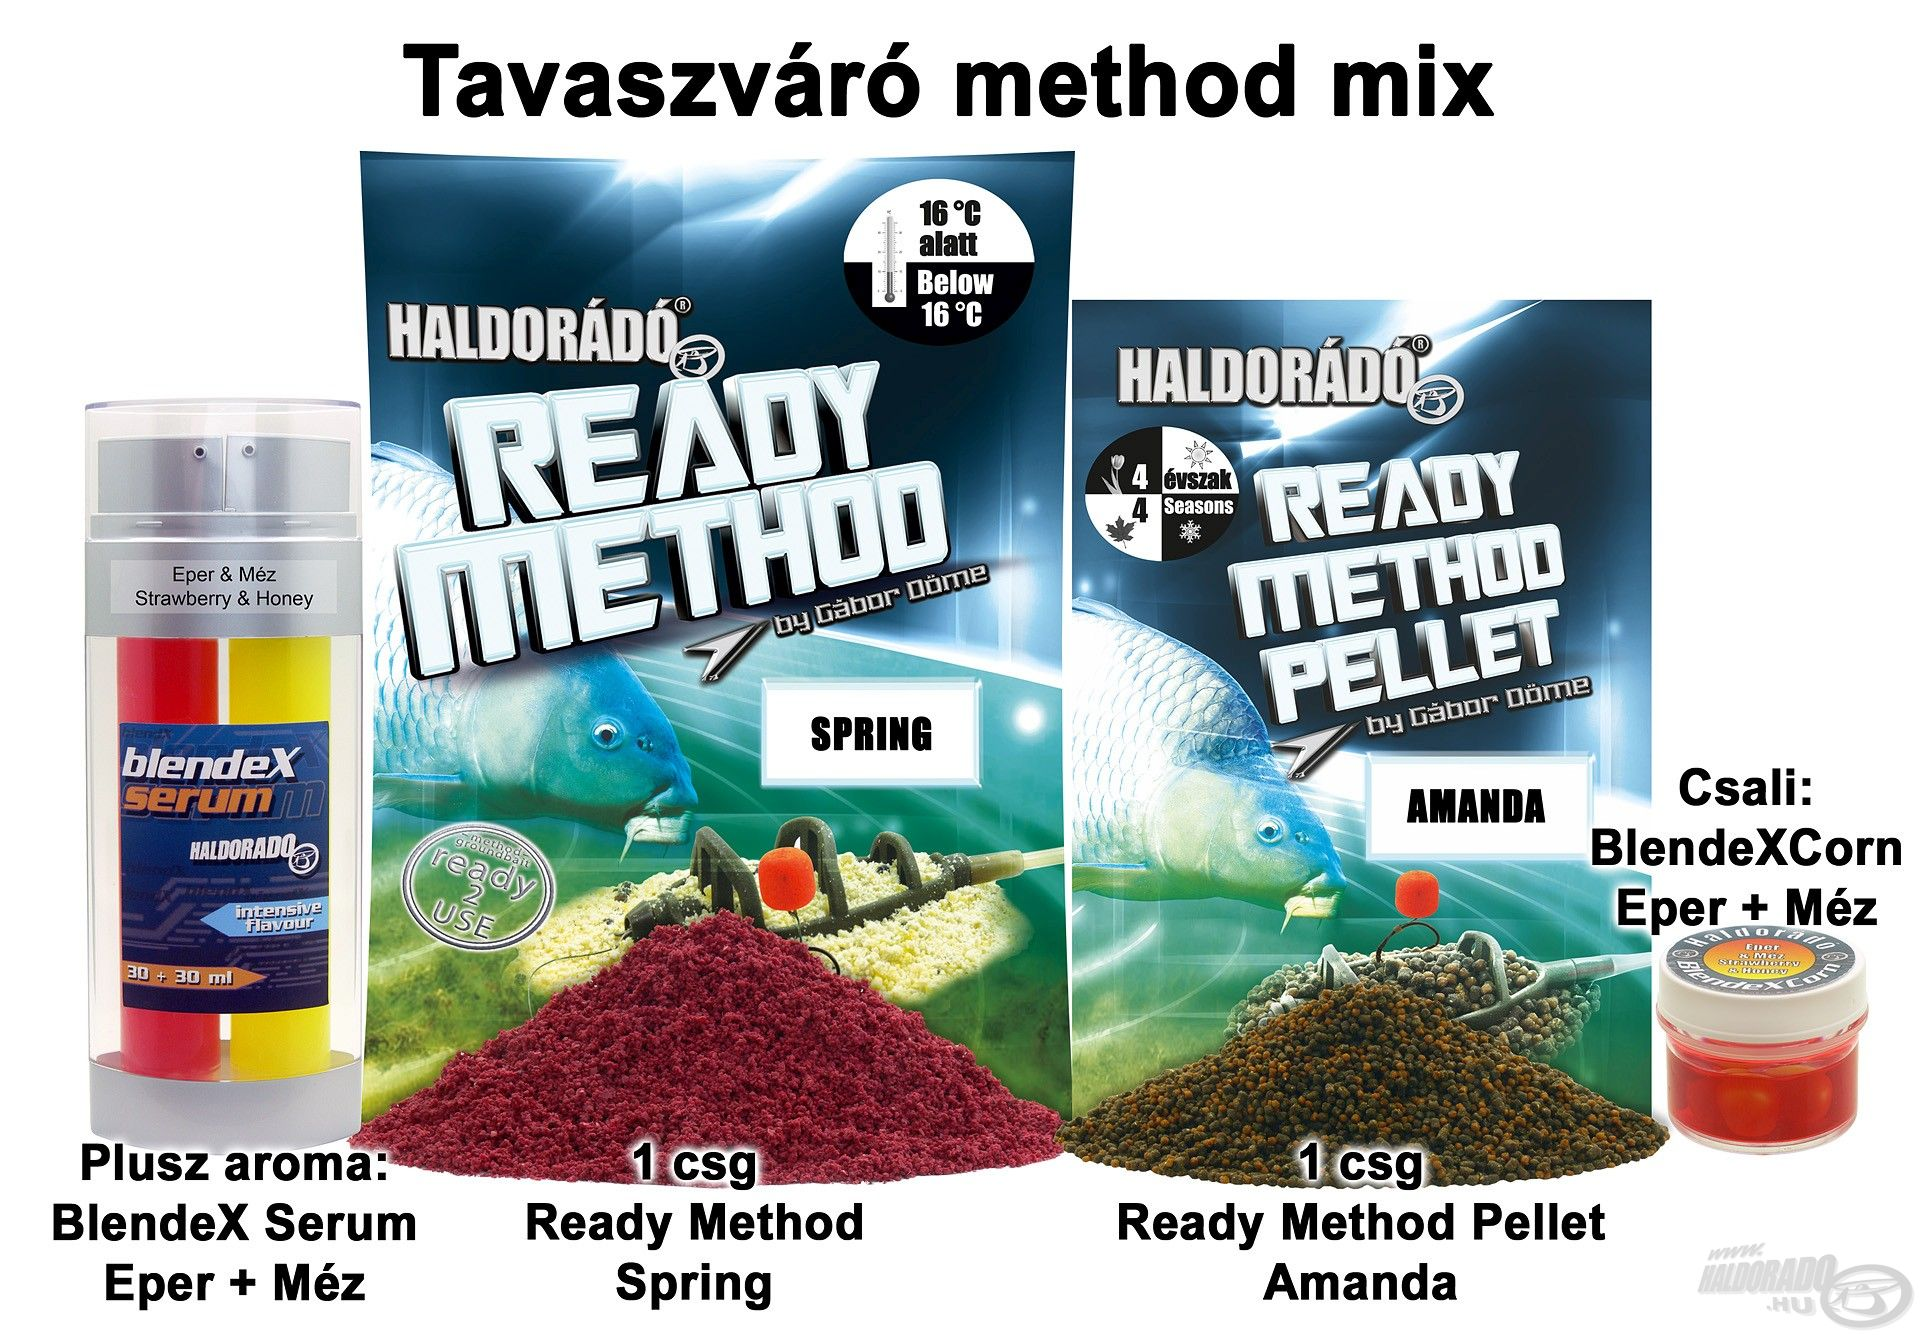 Tavaszváró method mix